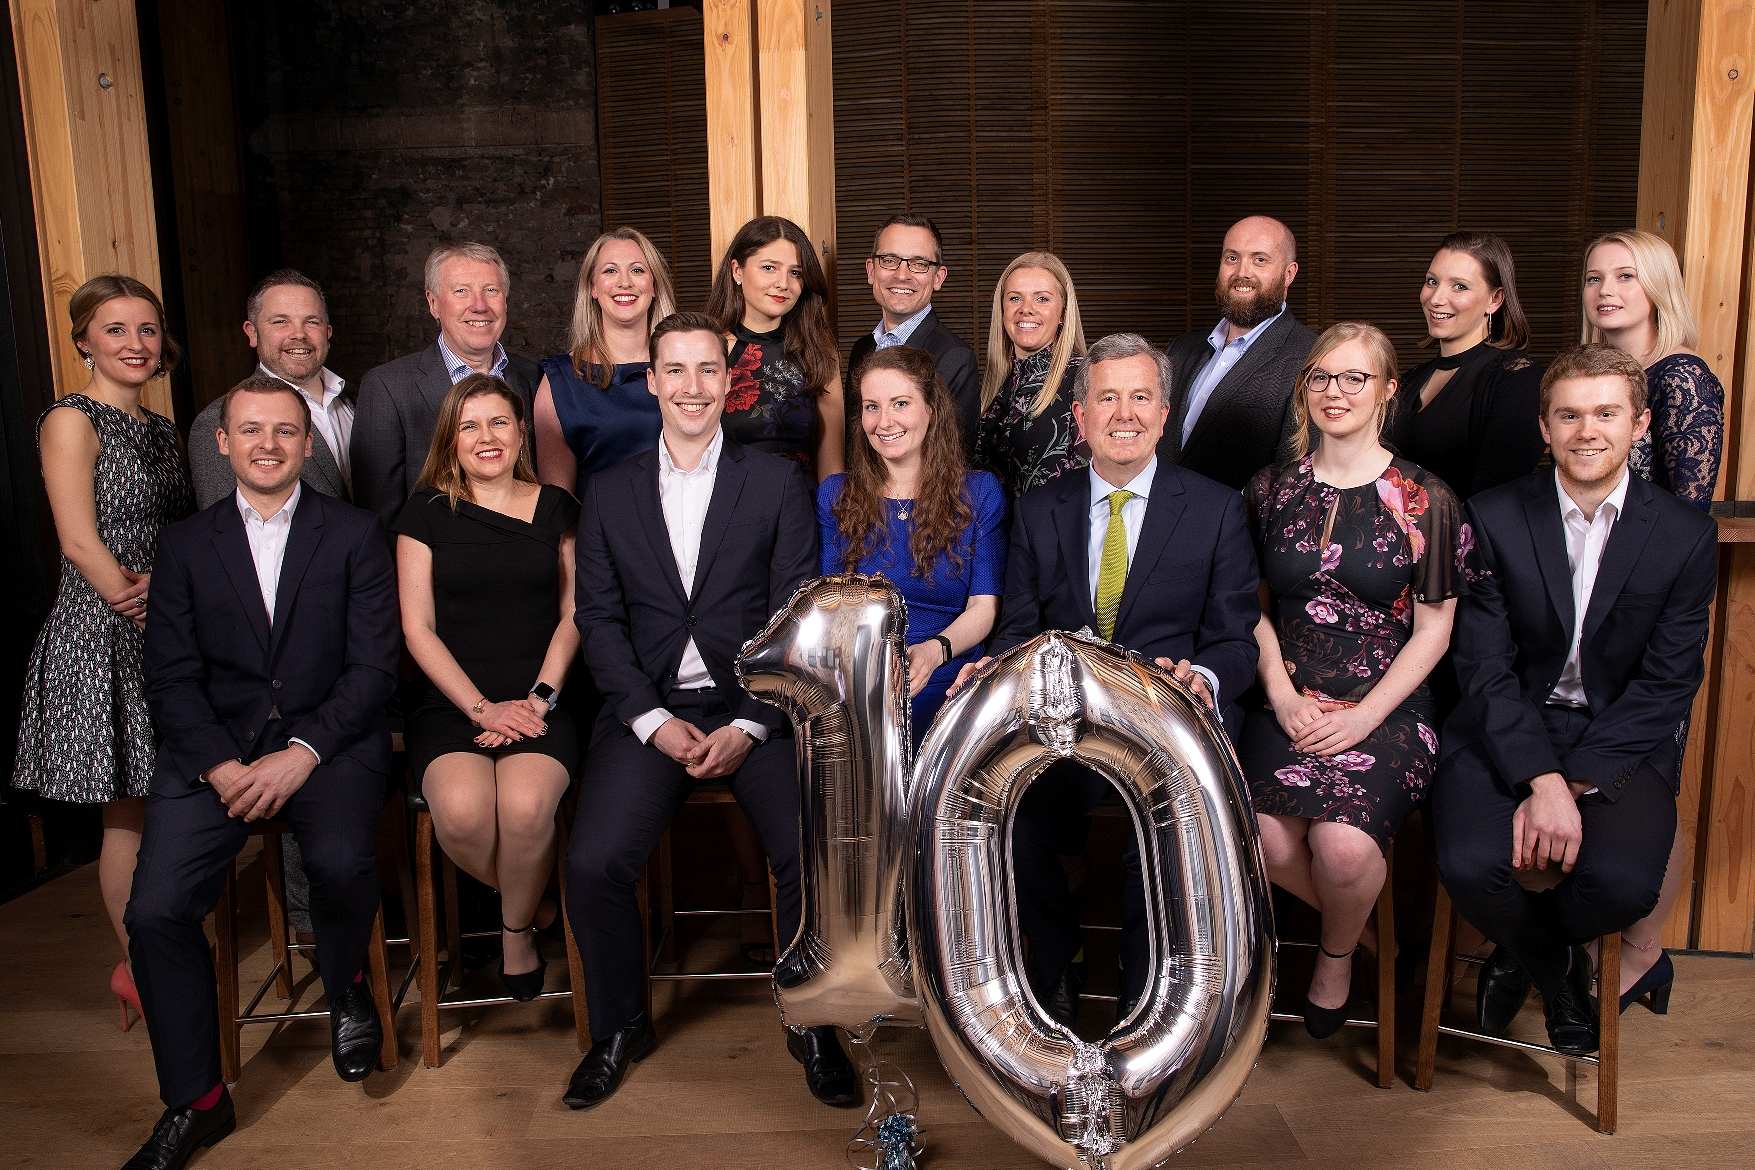 Friends and clients join accountants for firm's 10th anniversary dinner